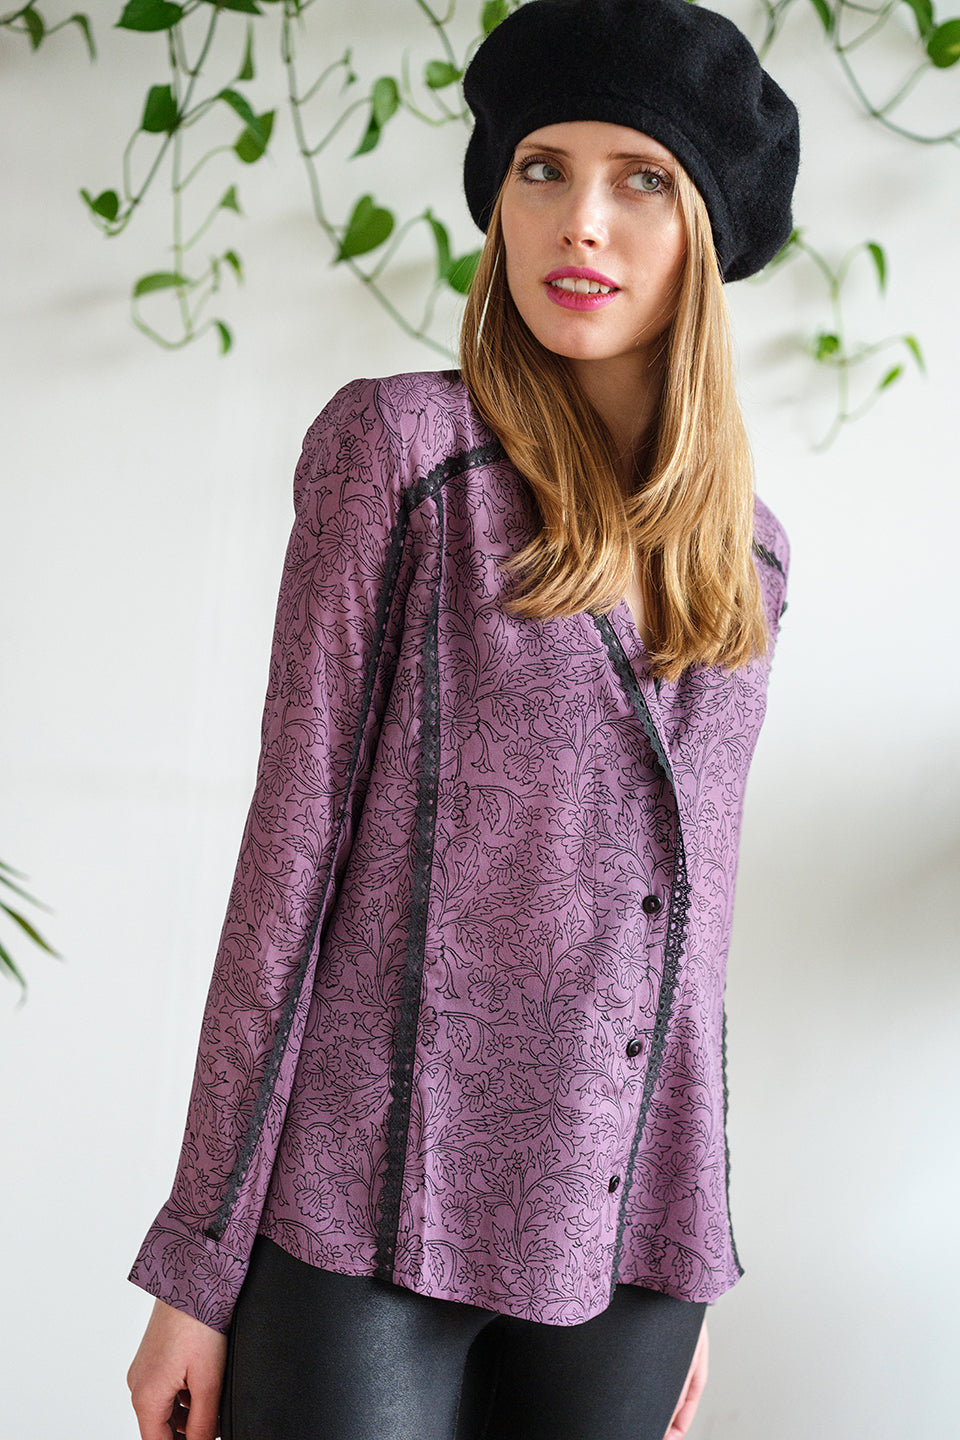 THE MONDAY SHIRT IN AUBERGINE